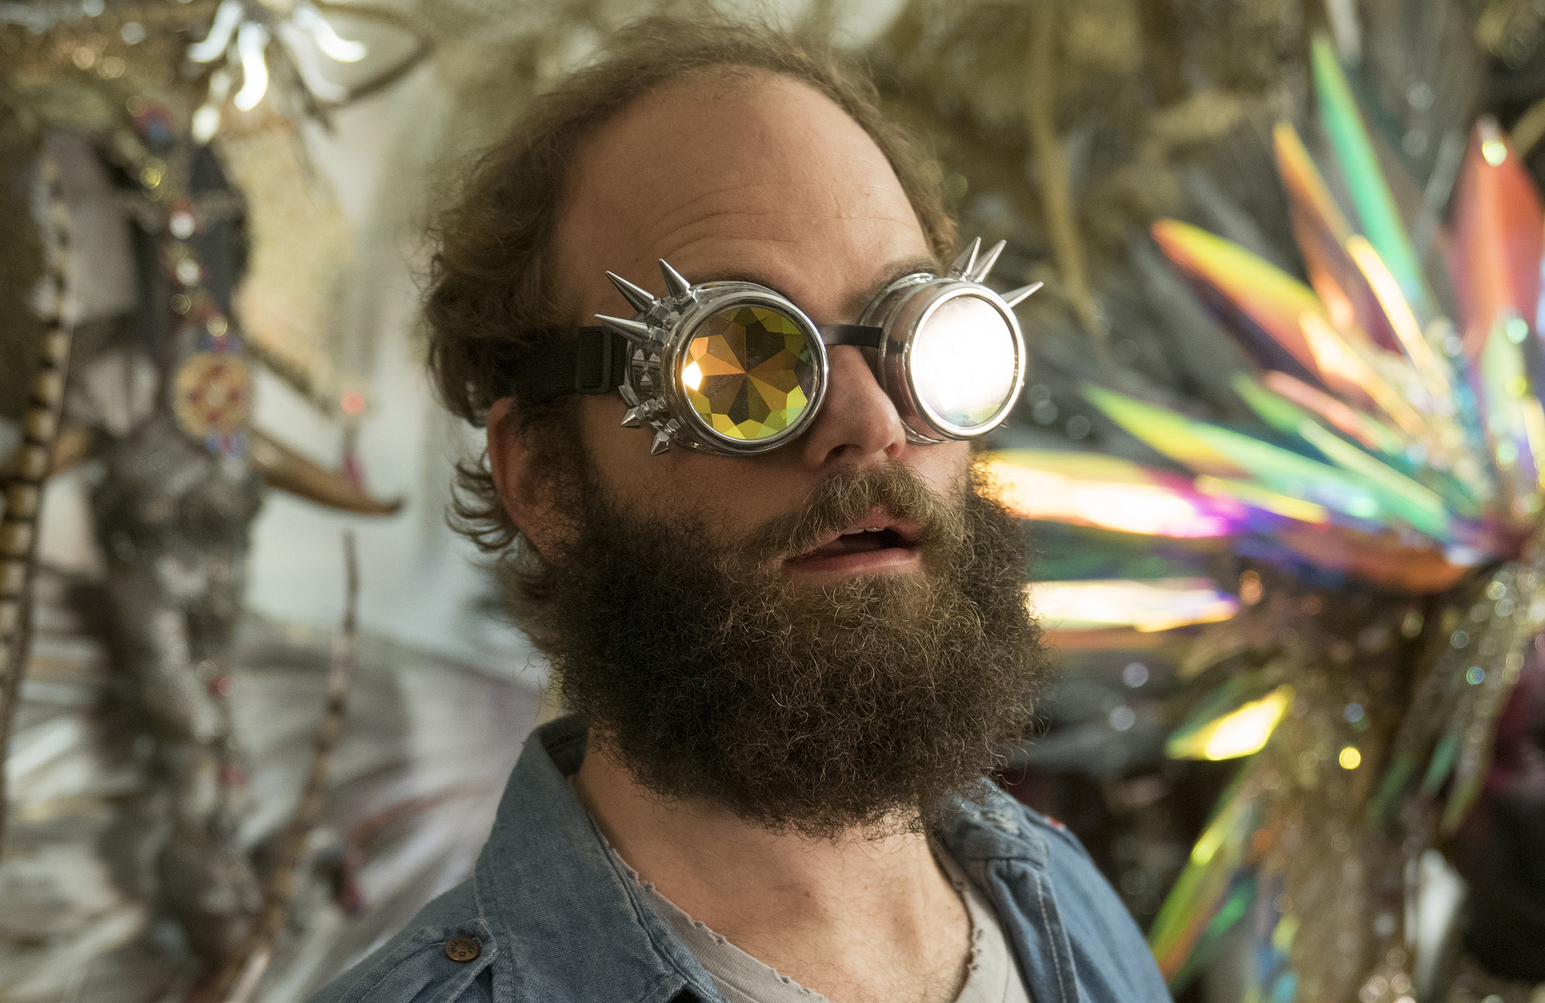 """The Guy"" (played by series creator Ben Sinclair) is the enigmatic center of High Maintenance. (Photo: HBO)"